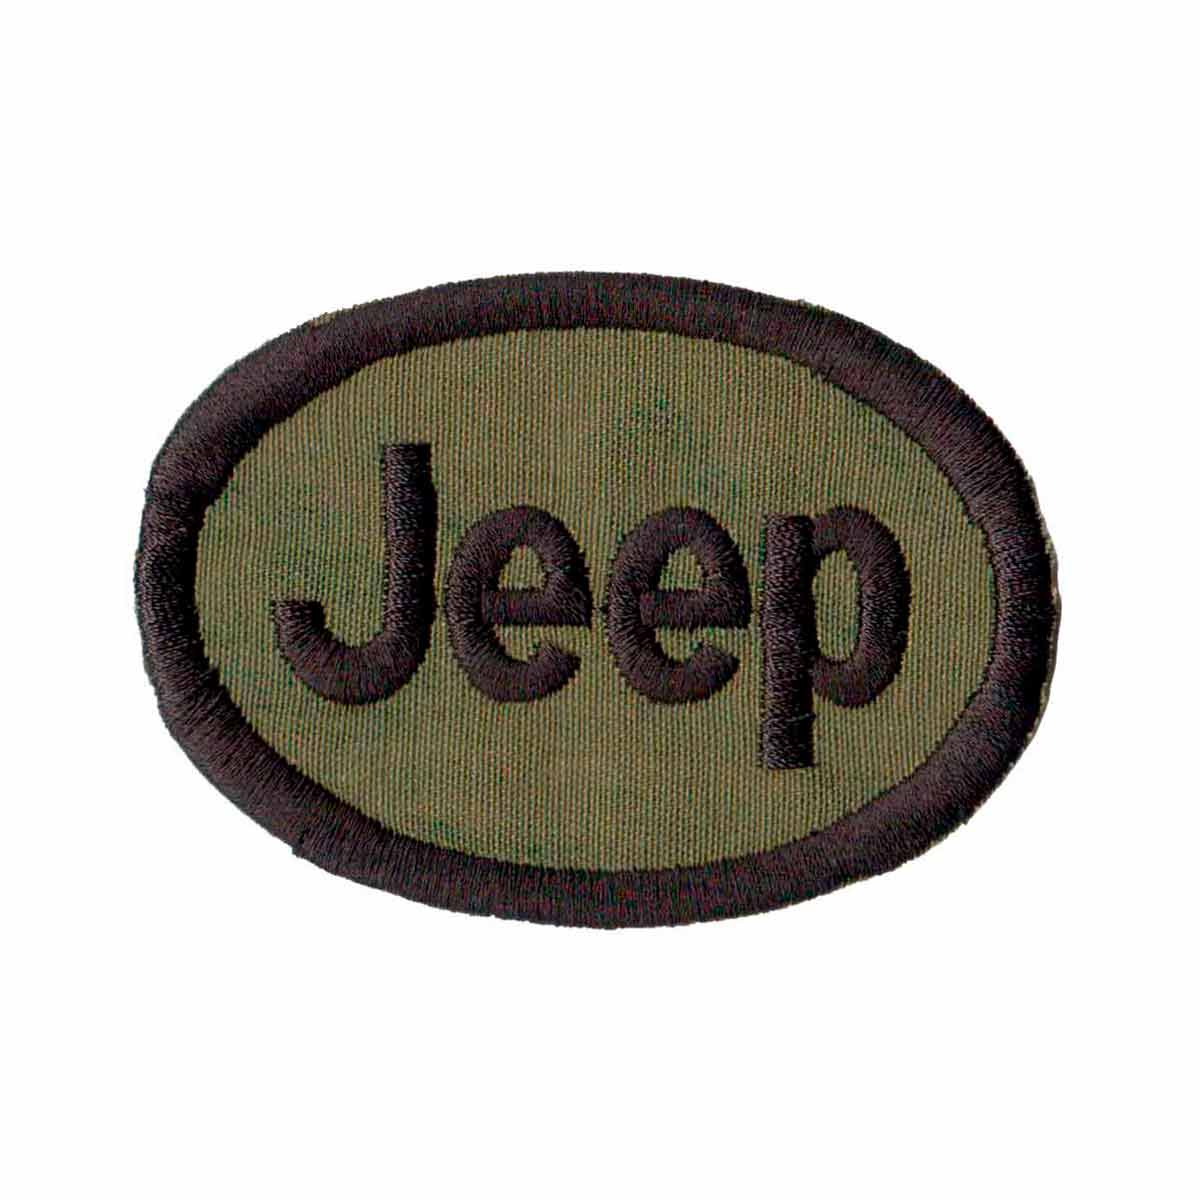 Patch Bordado - Logo Jeep Brasao Vintage Verde AD30023-05  - Talysmã Bordados